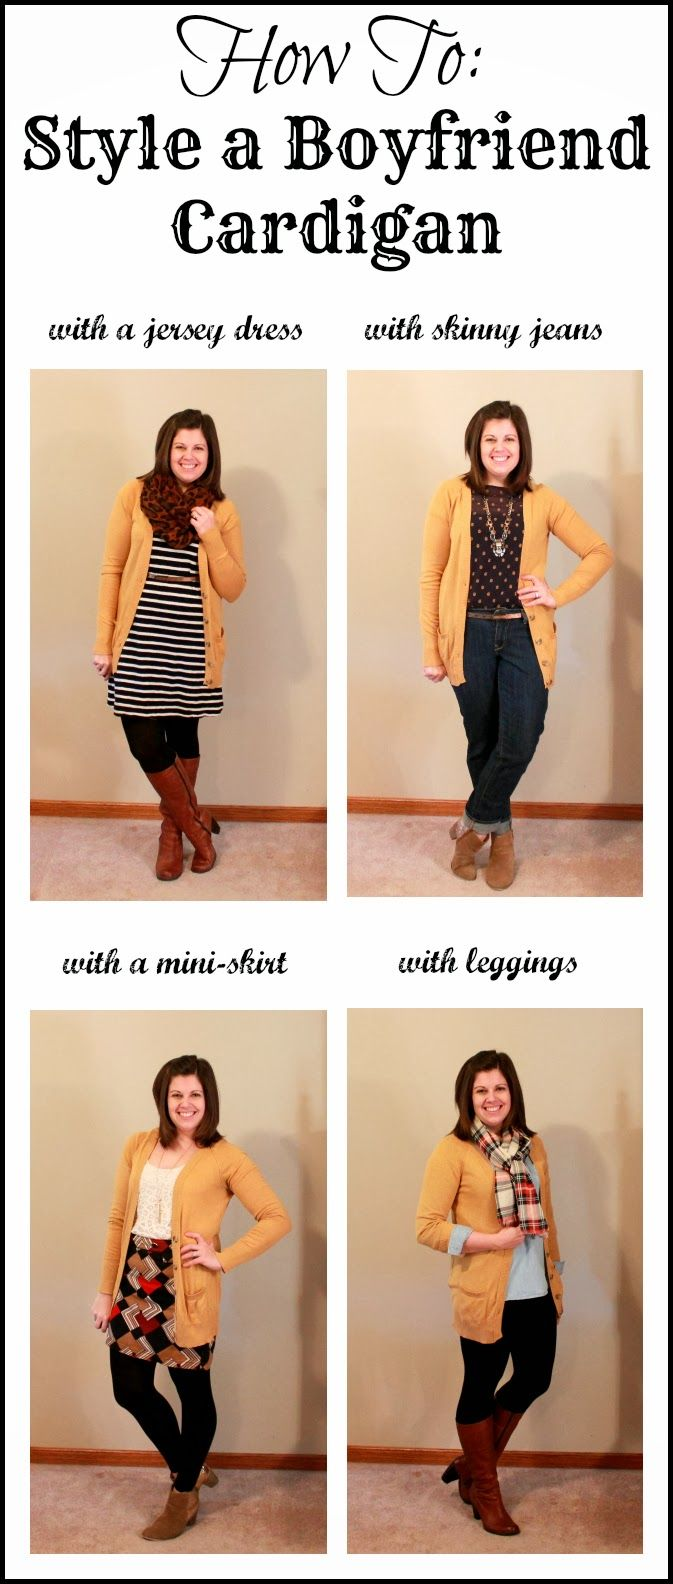 Clothed with Grace: How To: Style a Boyfriend Cardigan